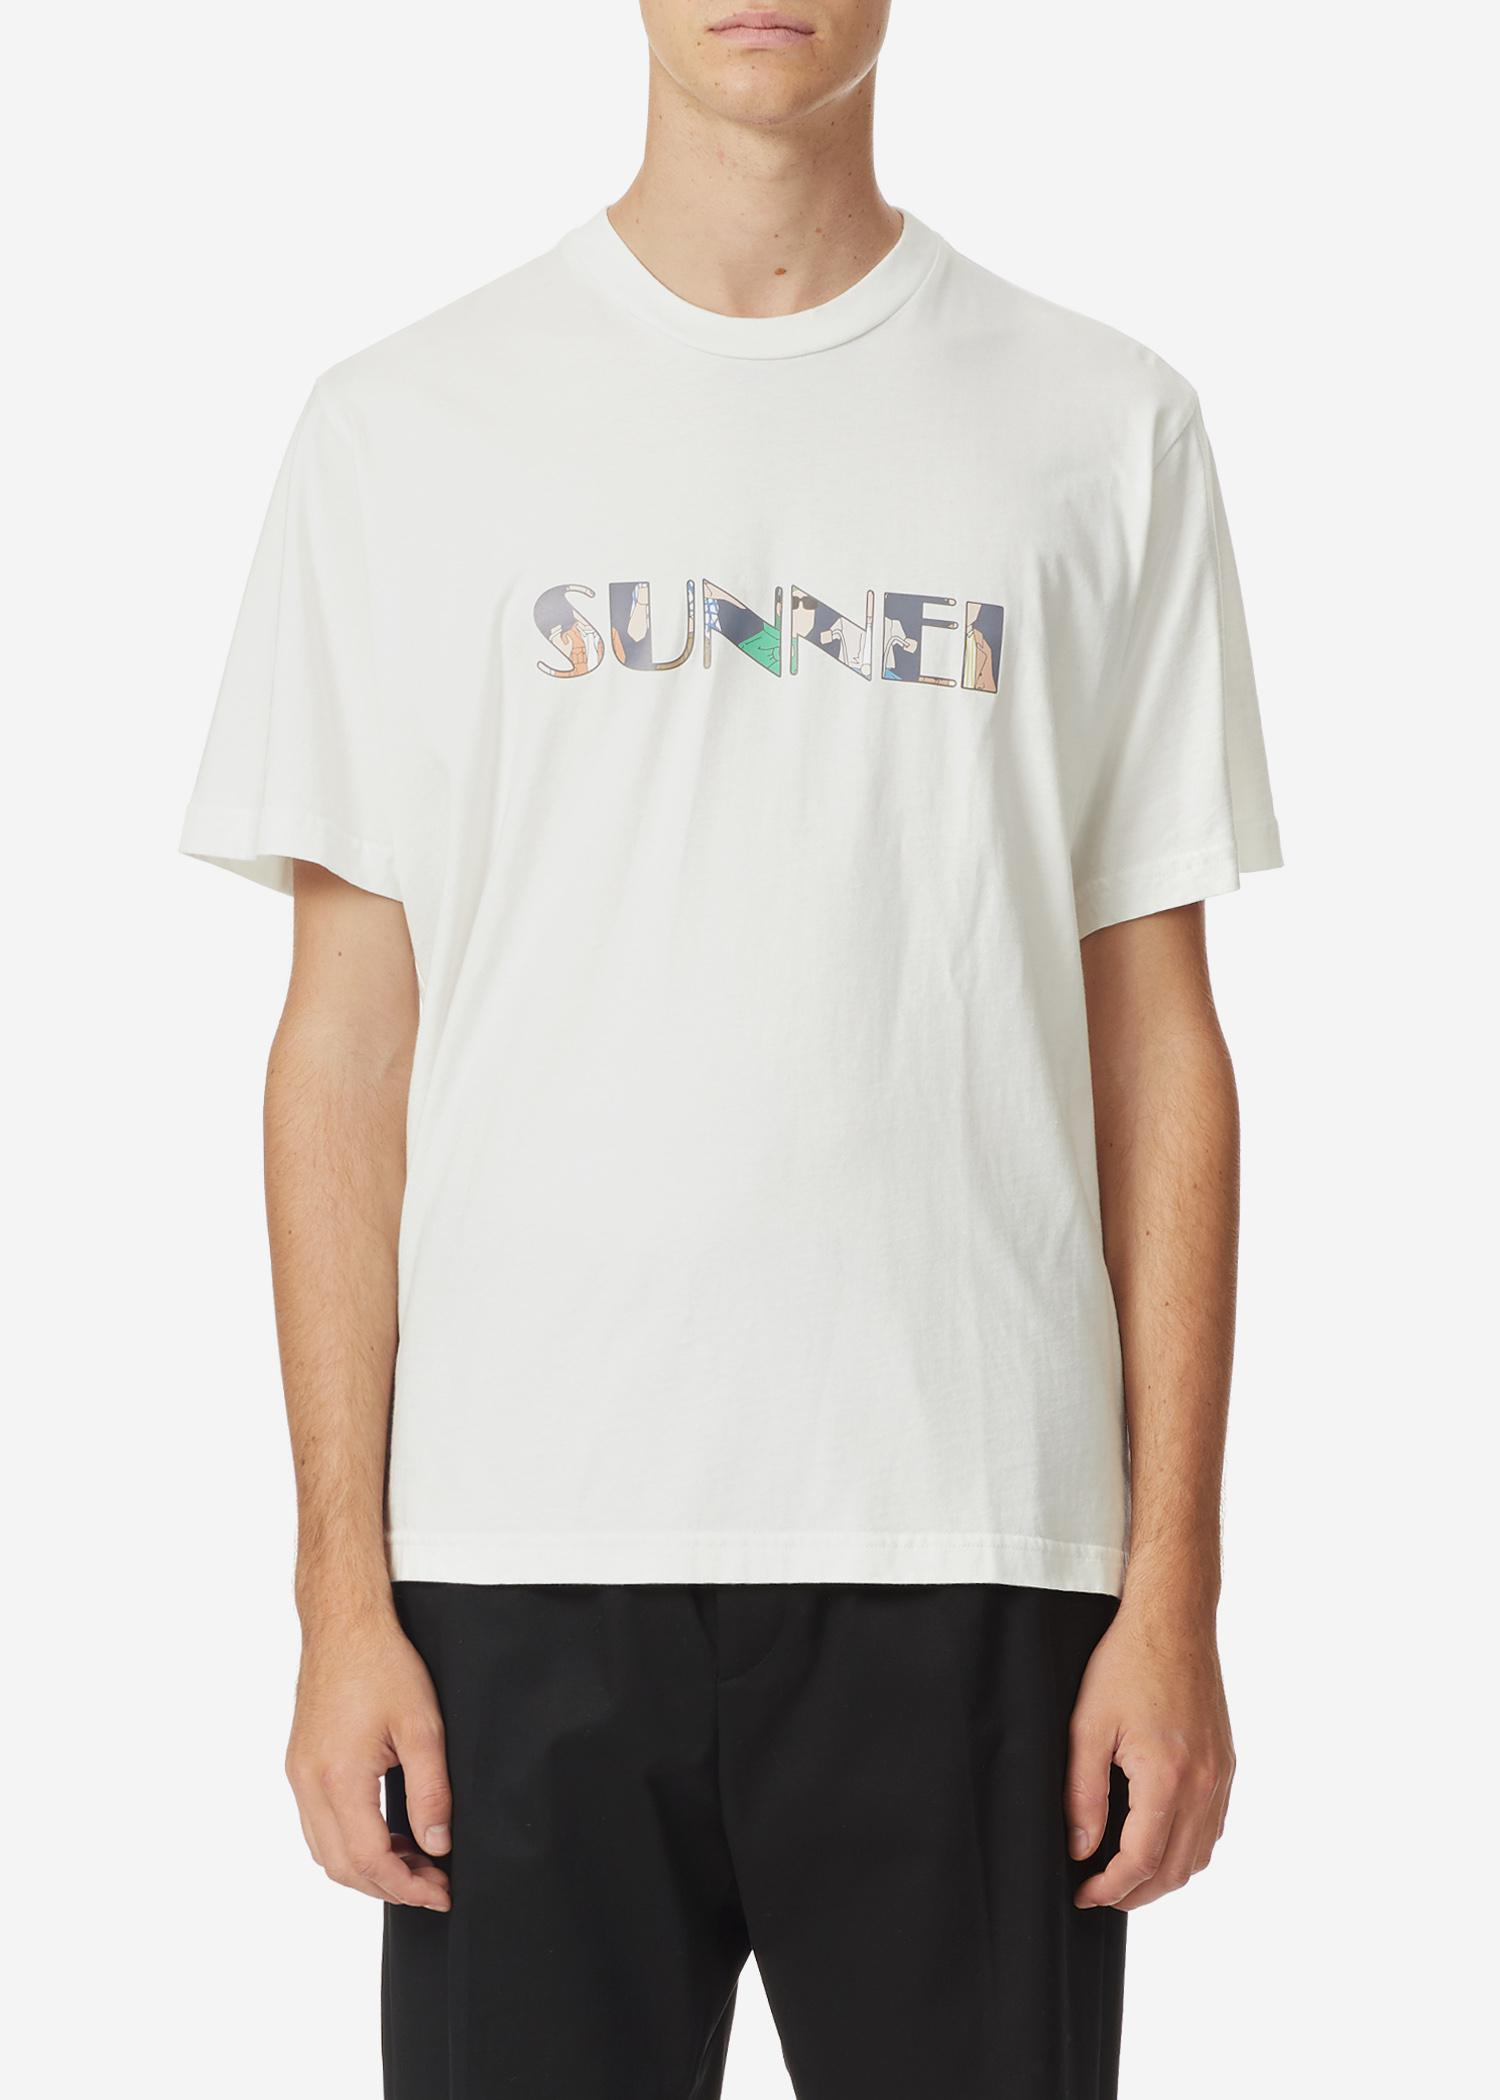 Sunnei Logo Print S/s T-shirt In White